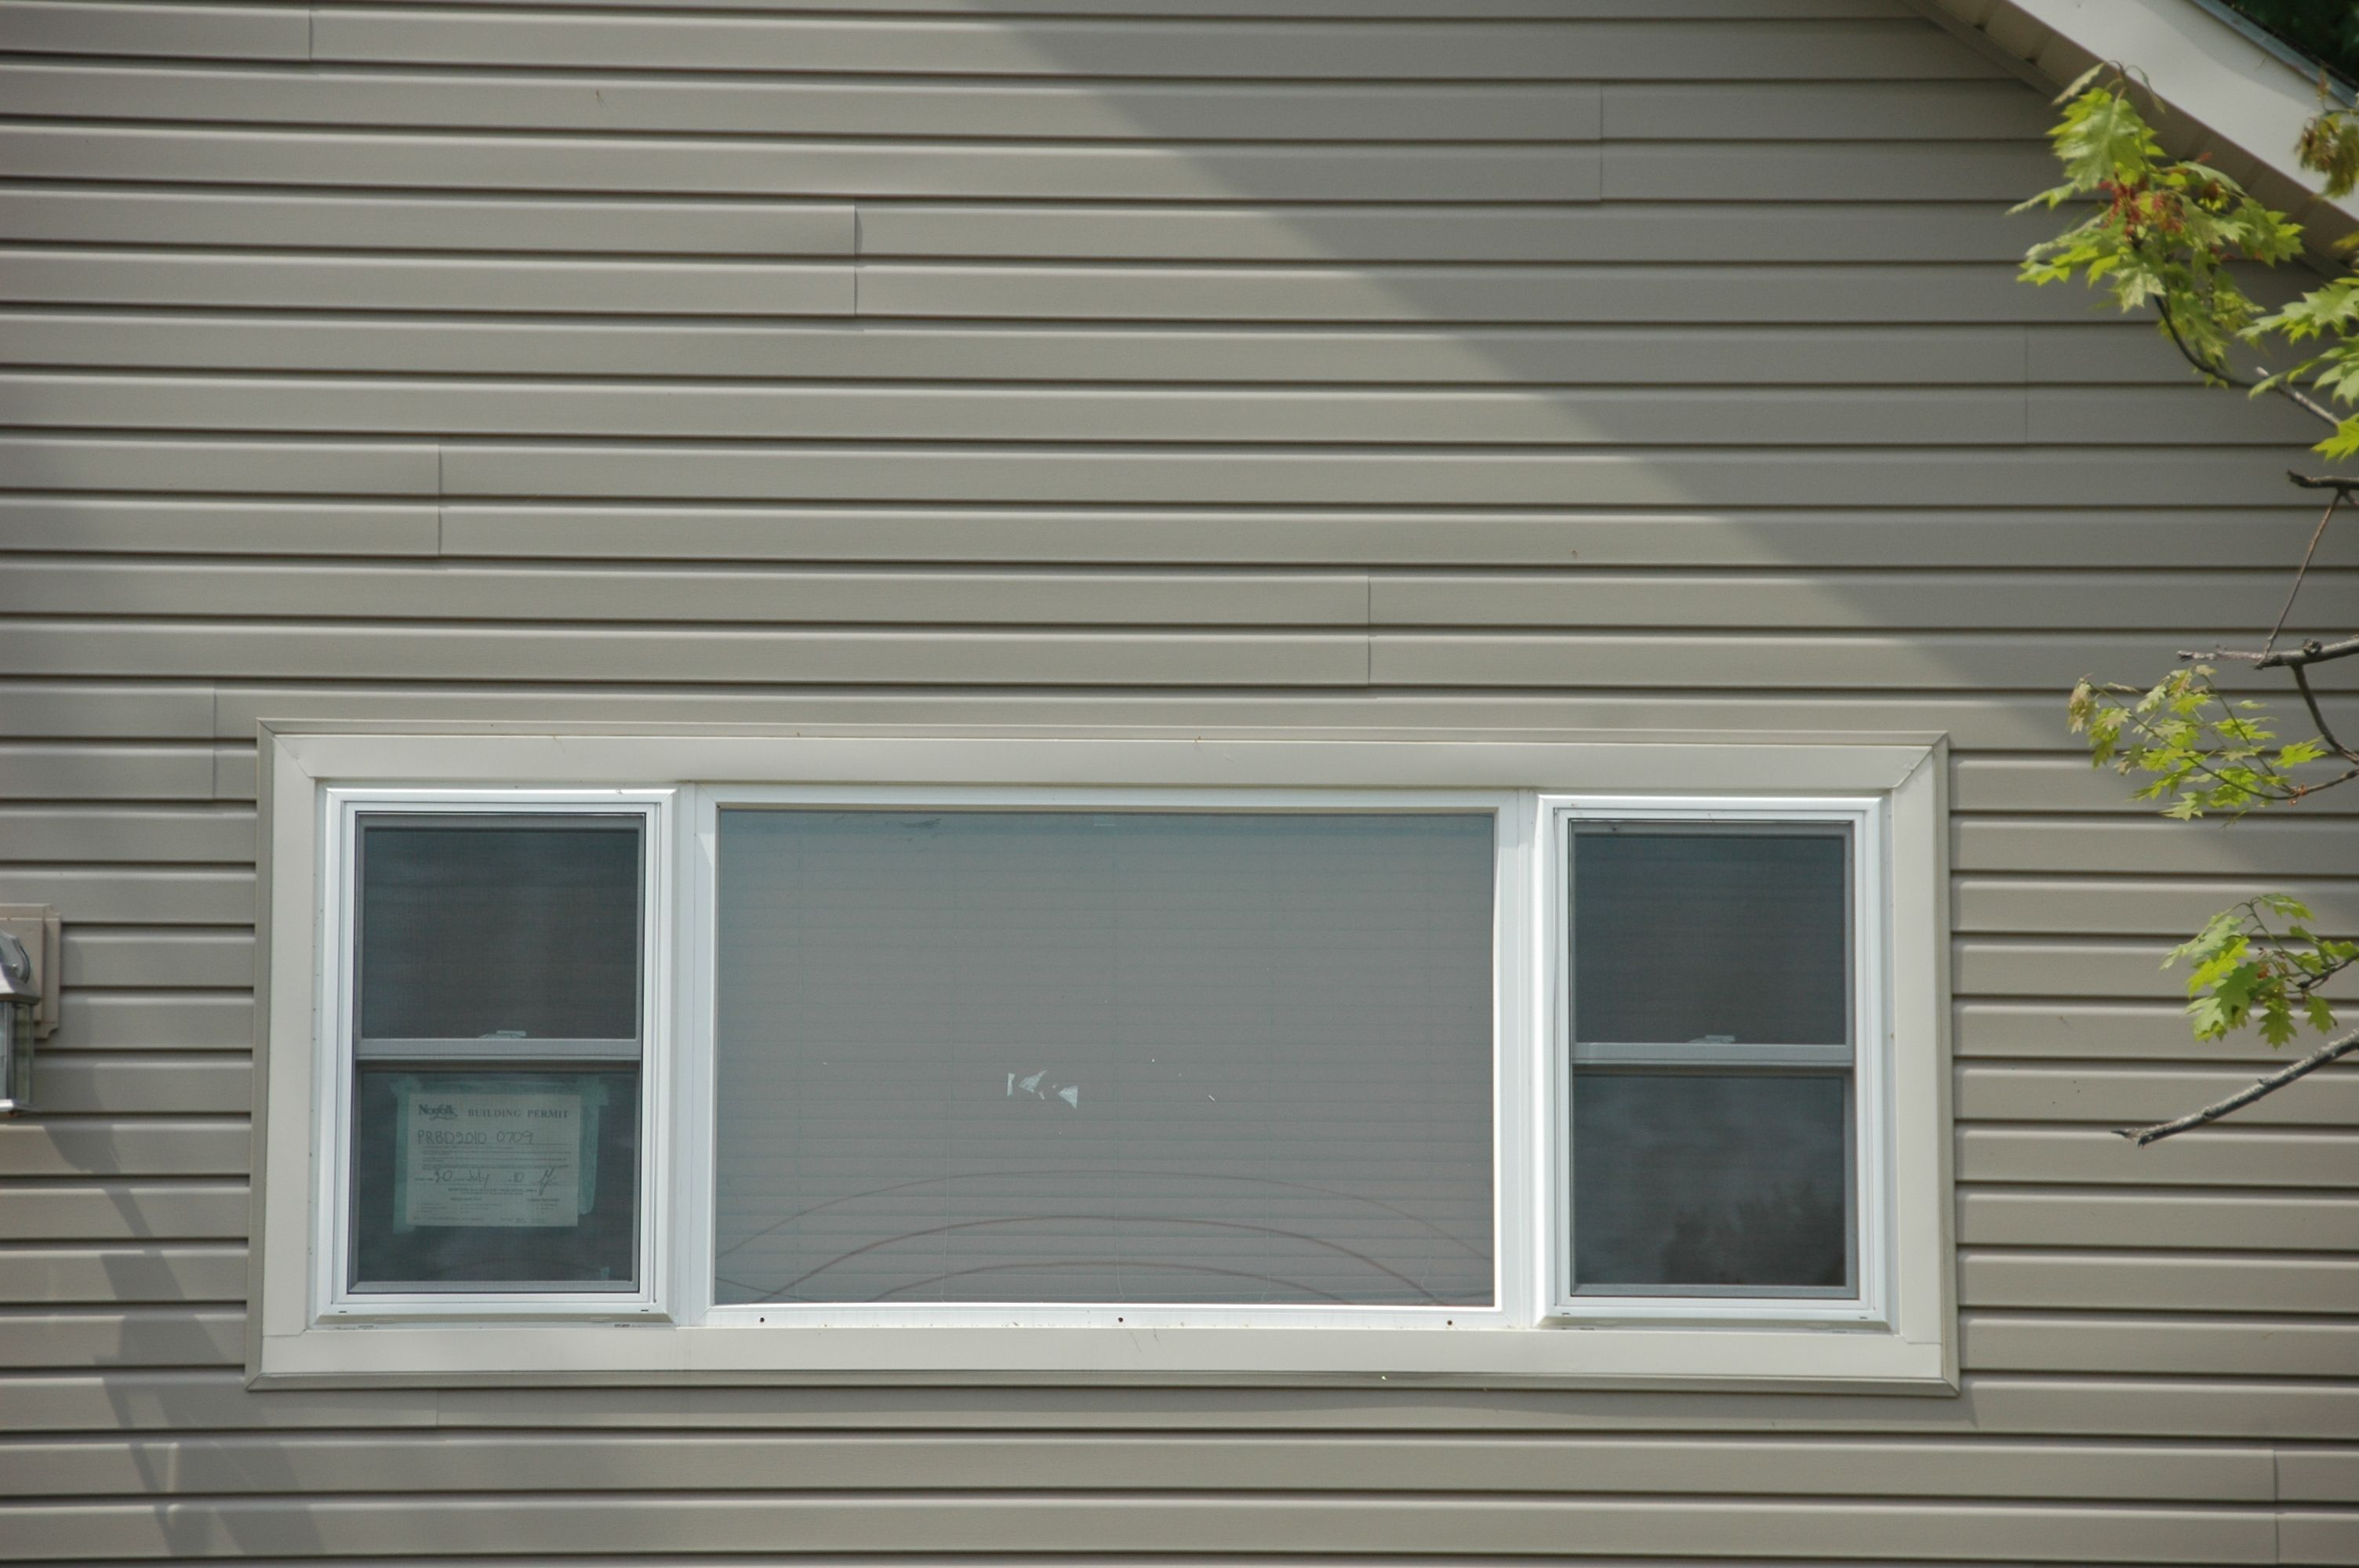 http://www.manufacturedhomerepairtips.com/windowreplacementoptions.php contains some instructions on how to remove an old window and how to install a new one.